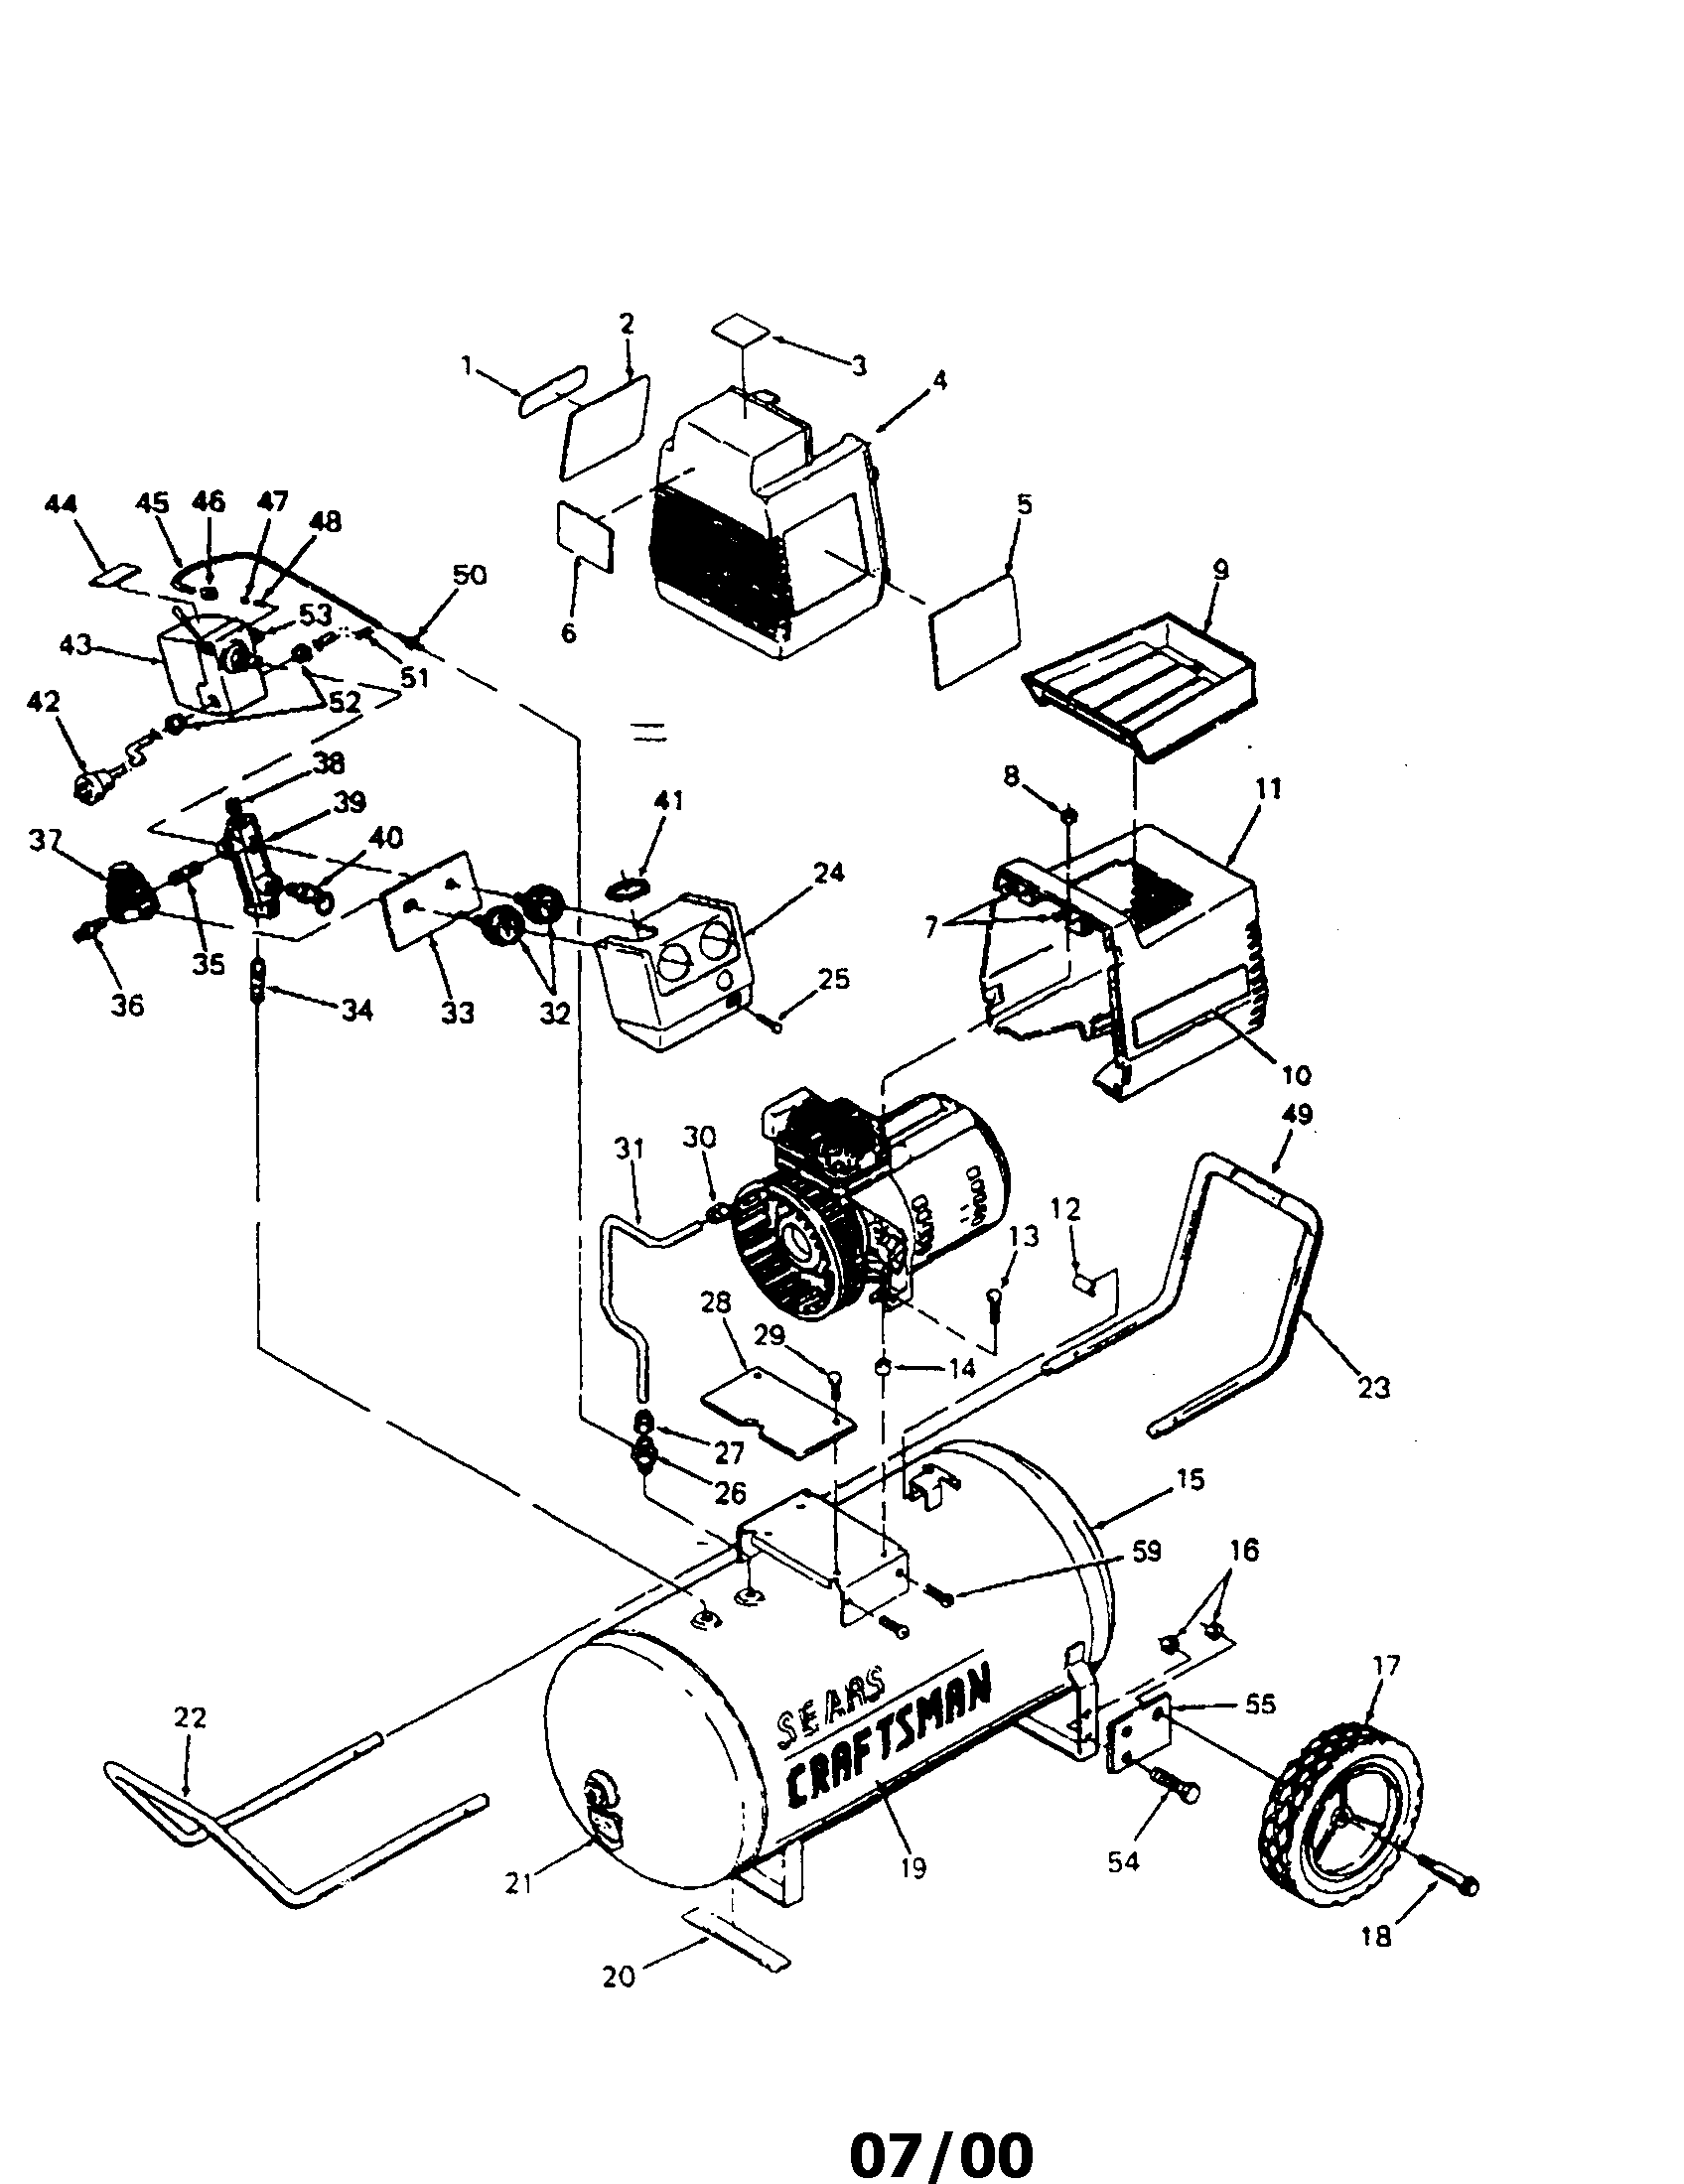 Wiring Diagram For Craftsman Air Compressor 43 Pressor 240 Volt Motor 919153231 Parts Sears 919 153231 At